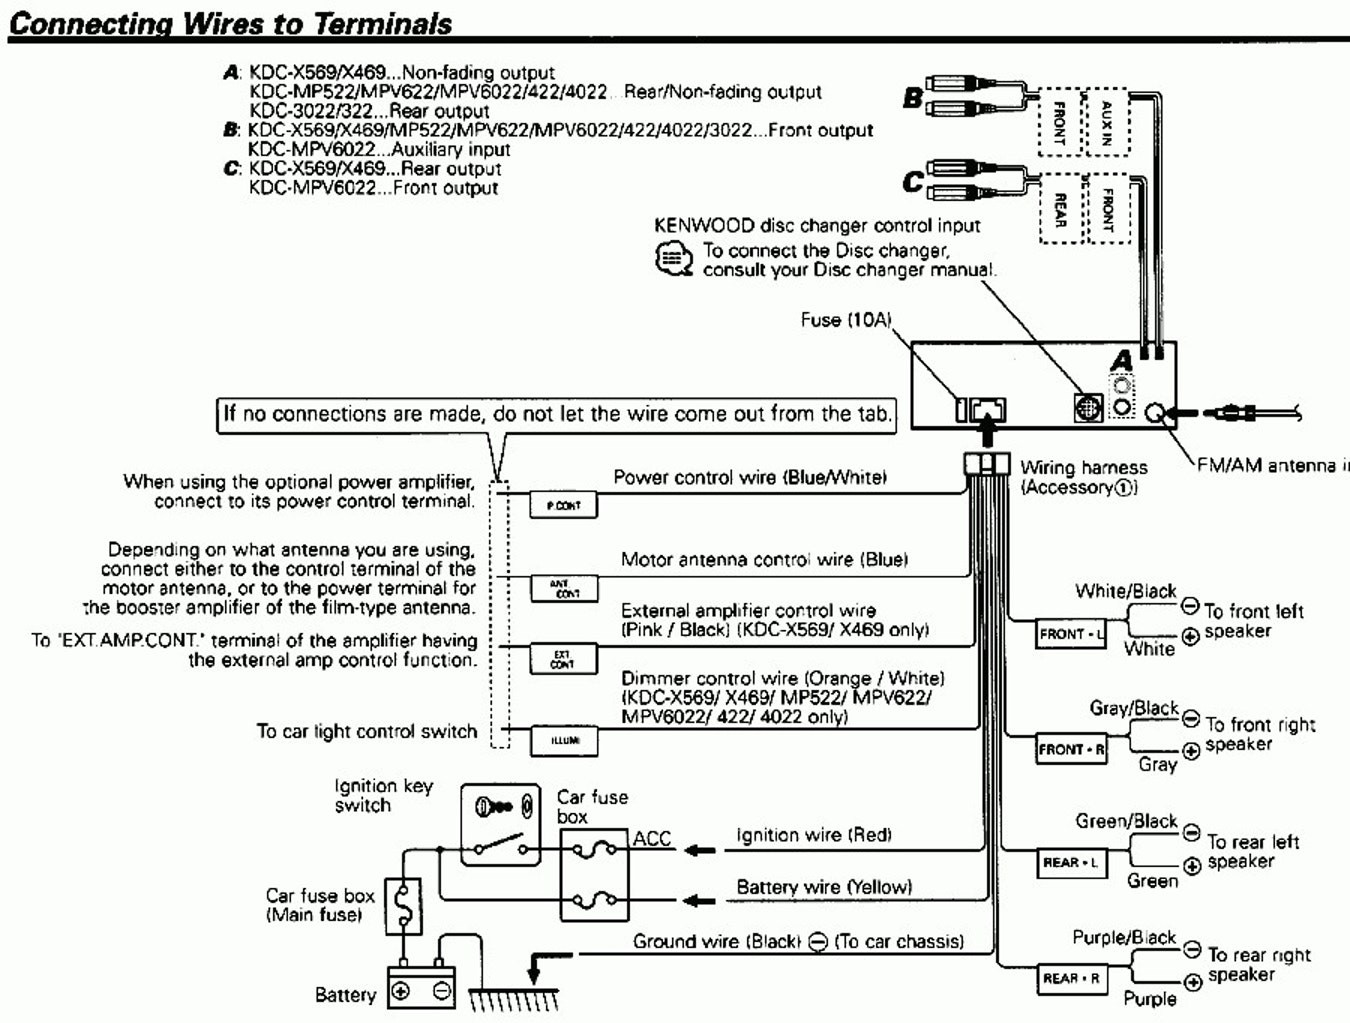 Kenwood Ddx7019 Wiring Diagram from mainetreasurechest.com